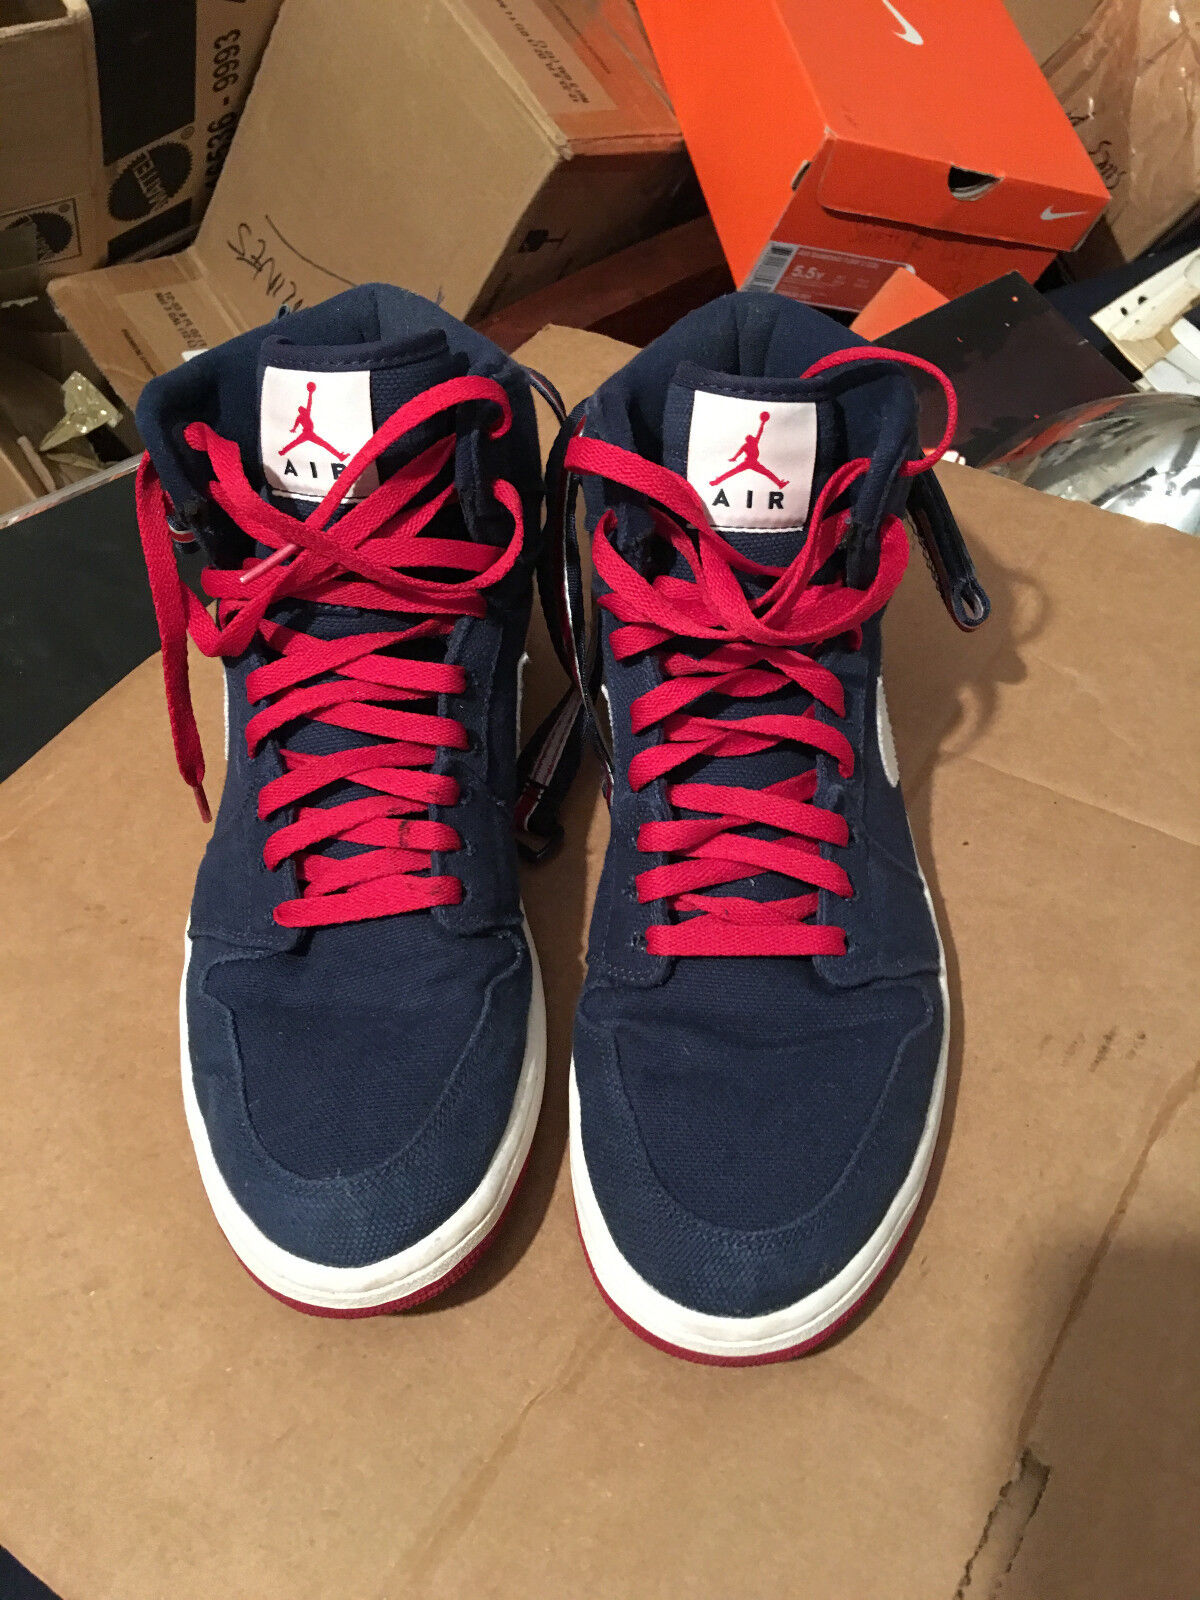 NIKE AIR JORDAN 1 HIGH STRAP MIDNIGHT NAVY BLUE-RED Price reduction New shoes for men and women, limited time discount